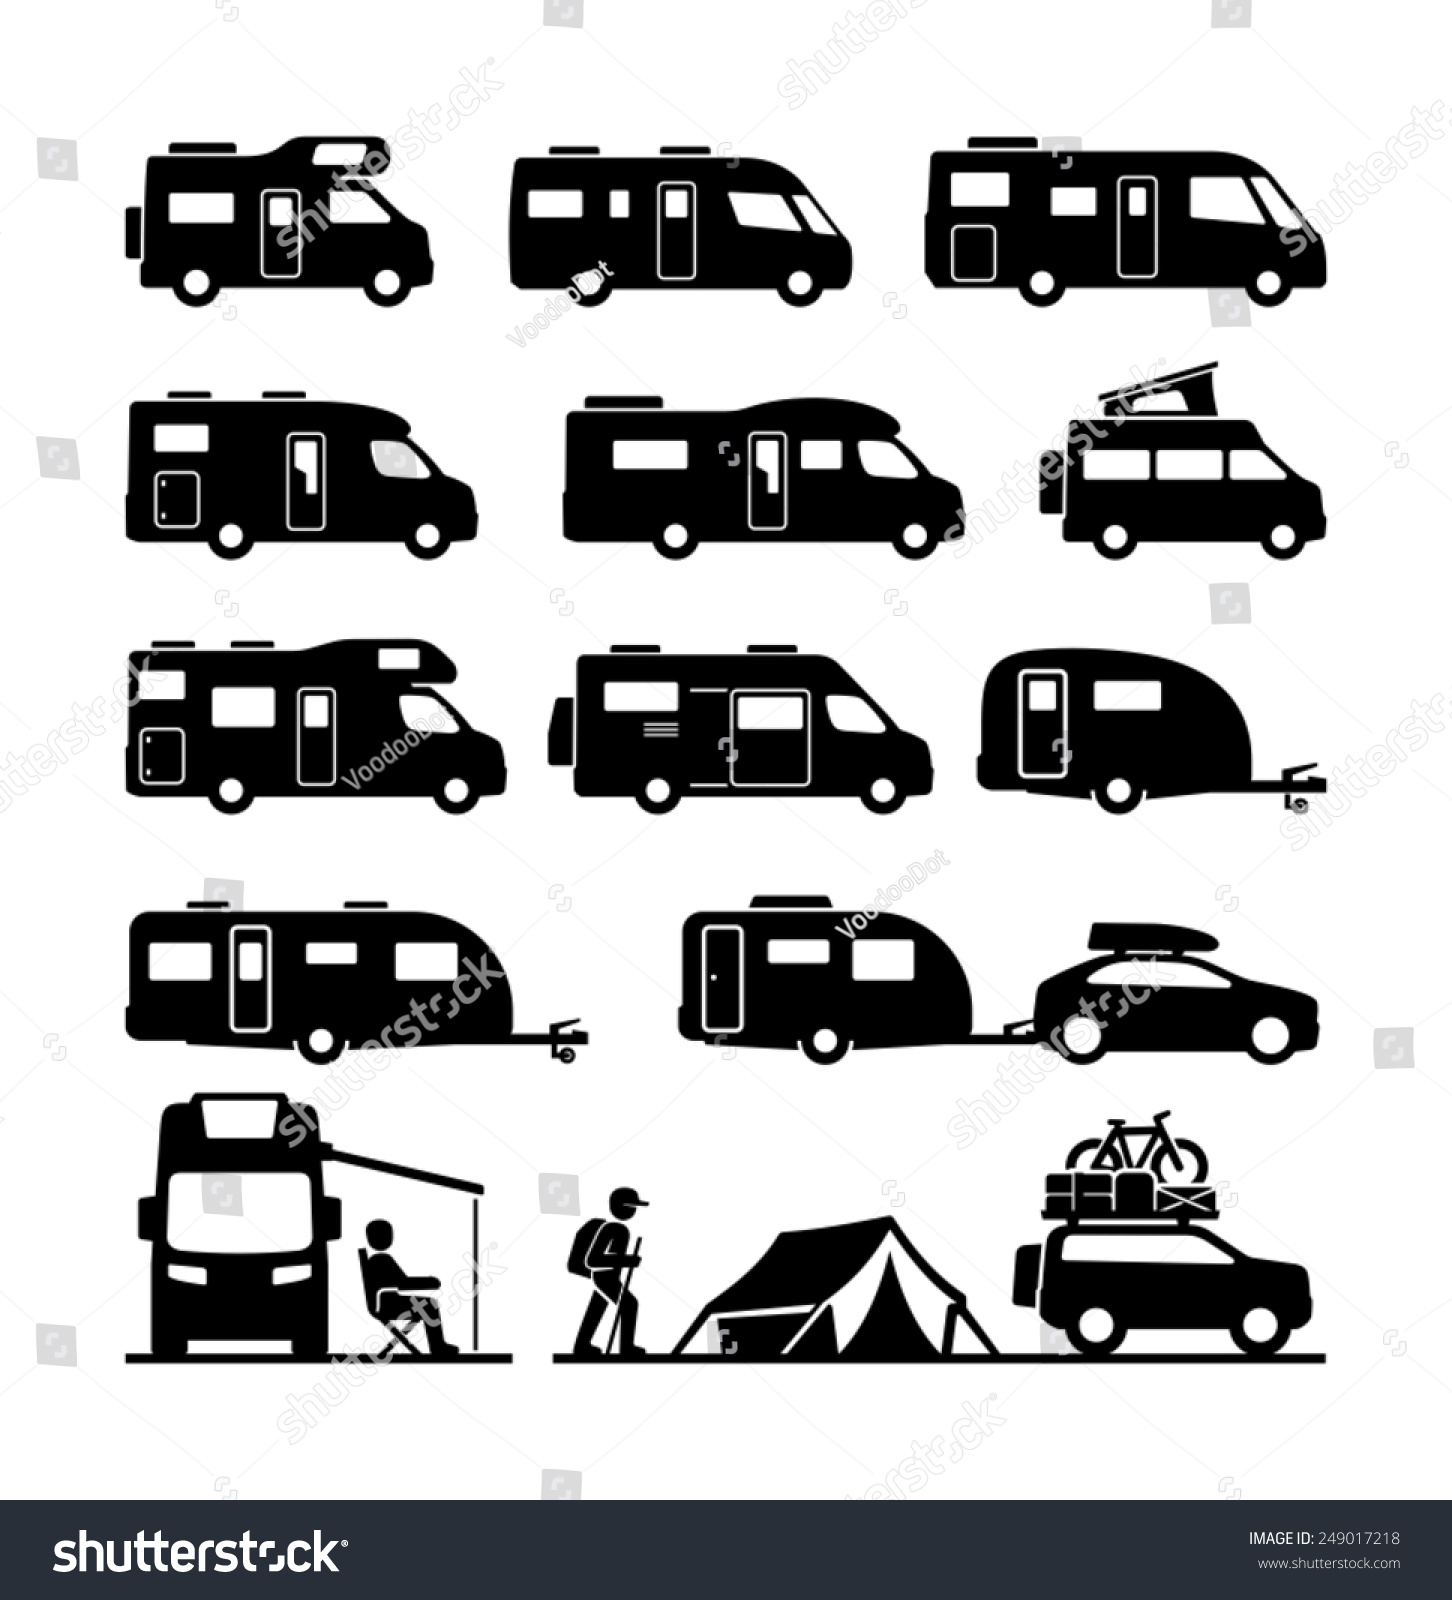 Simple  The Summer Recreational Vehicles Camper Vans Icons Camper Illustration